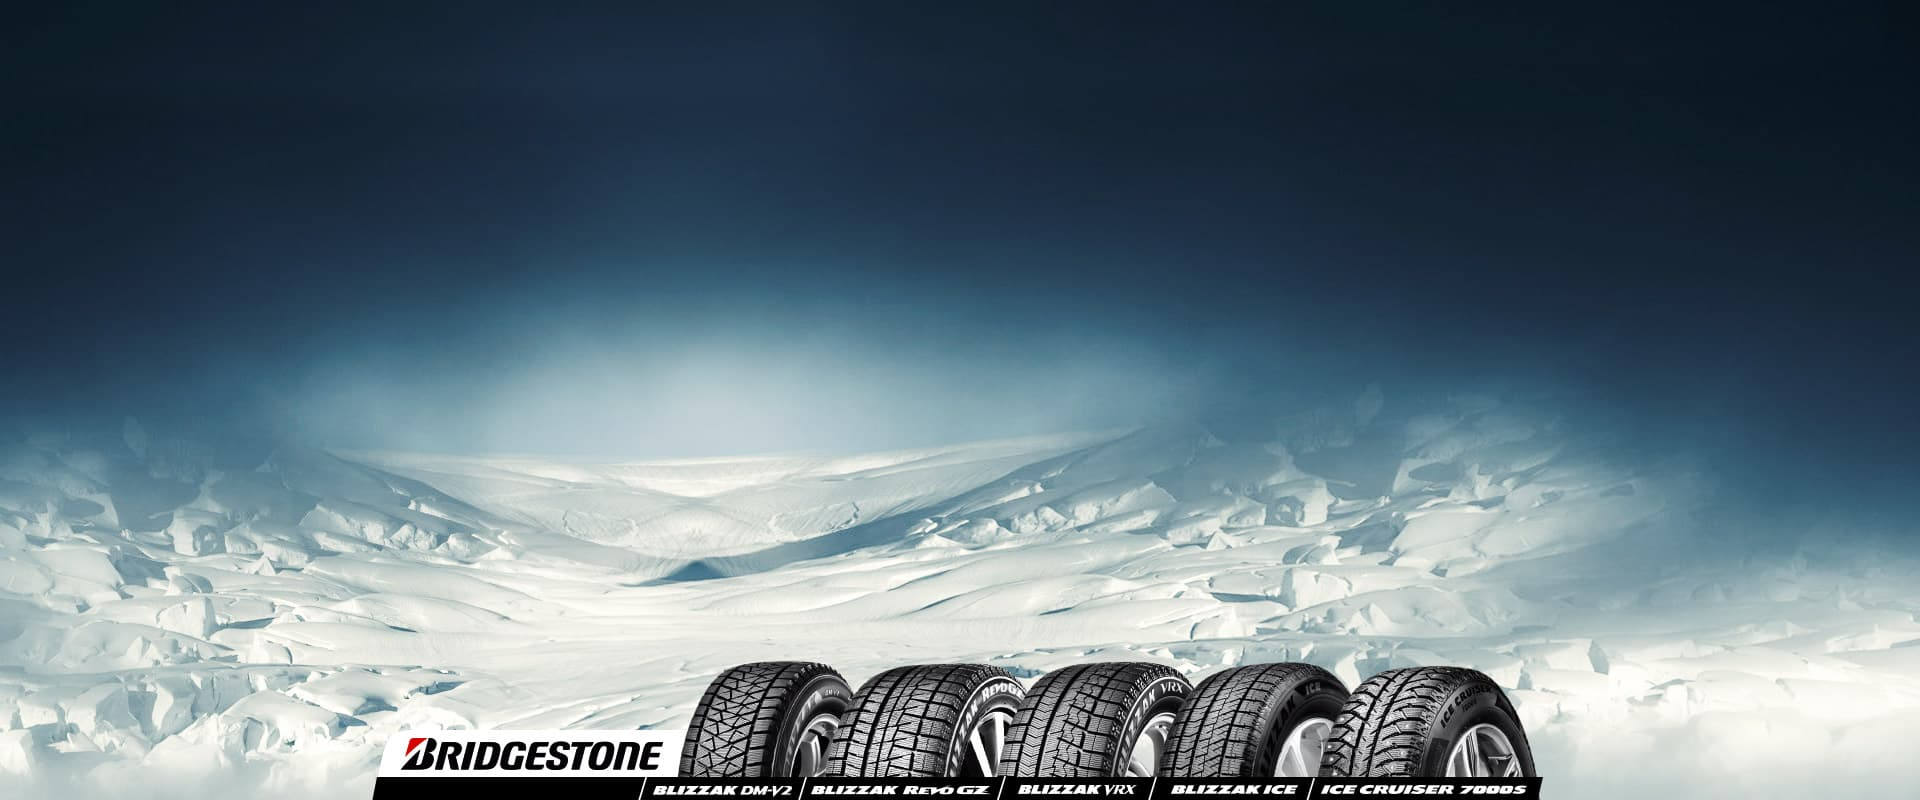 Bridgestone slide